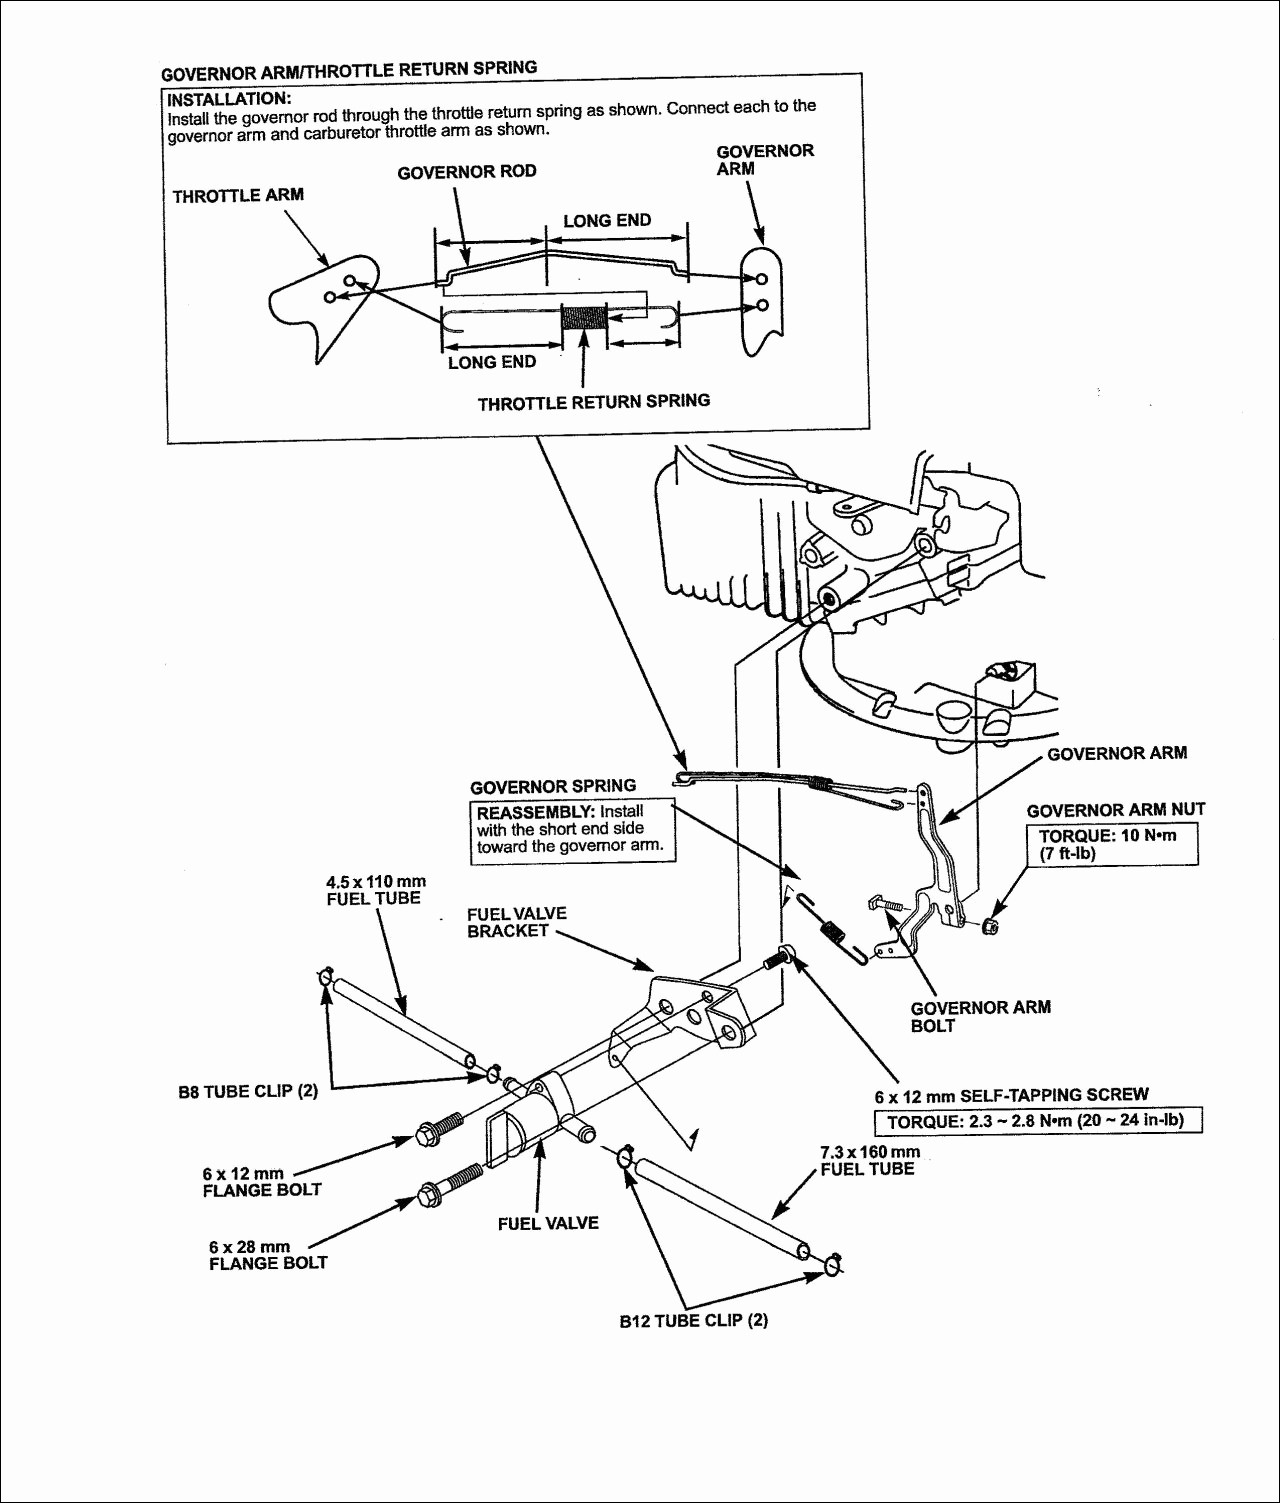 Duramax Diesel Engine Diagram Further Ford Explorer Fuse Box Diagram